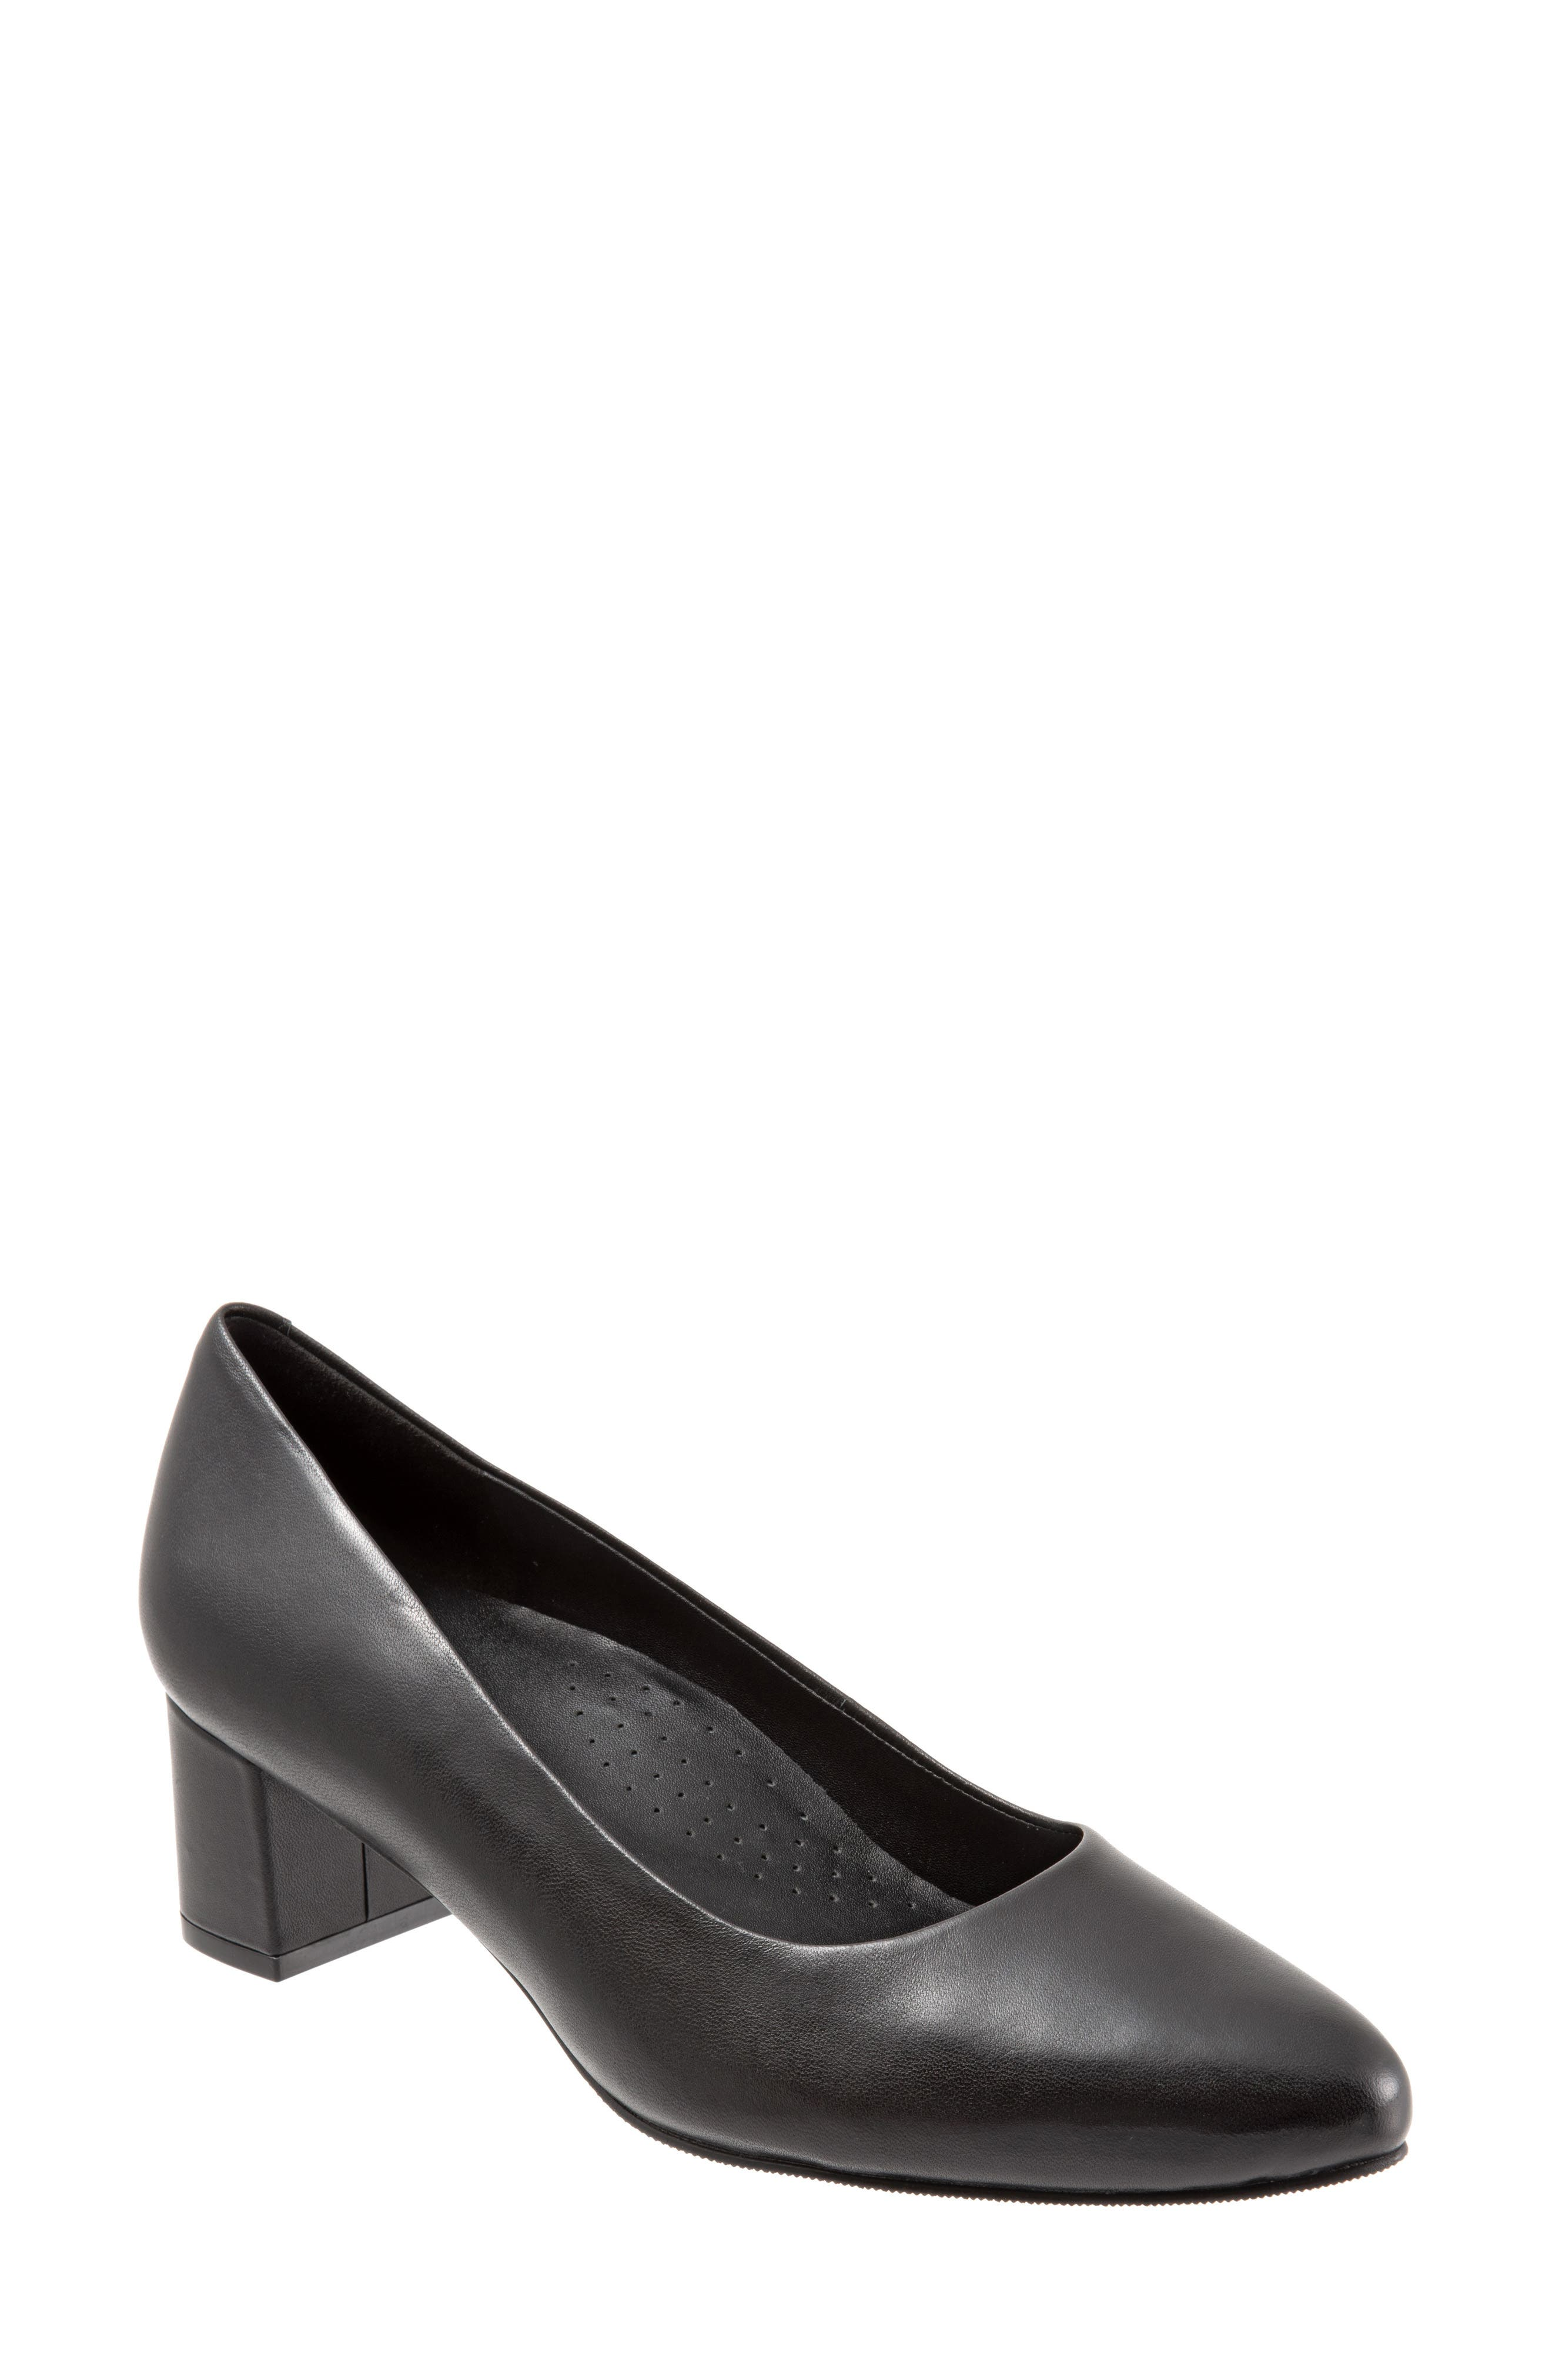 TROTTERS Kari Pointy Toe Pump, Main, color, BLACK LEATHER